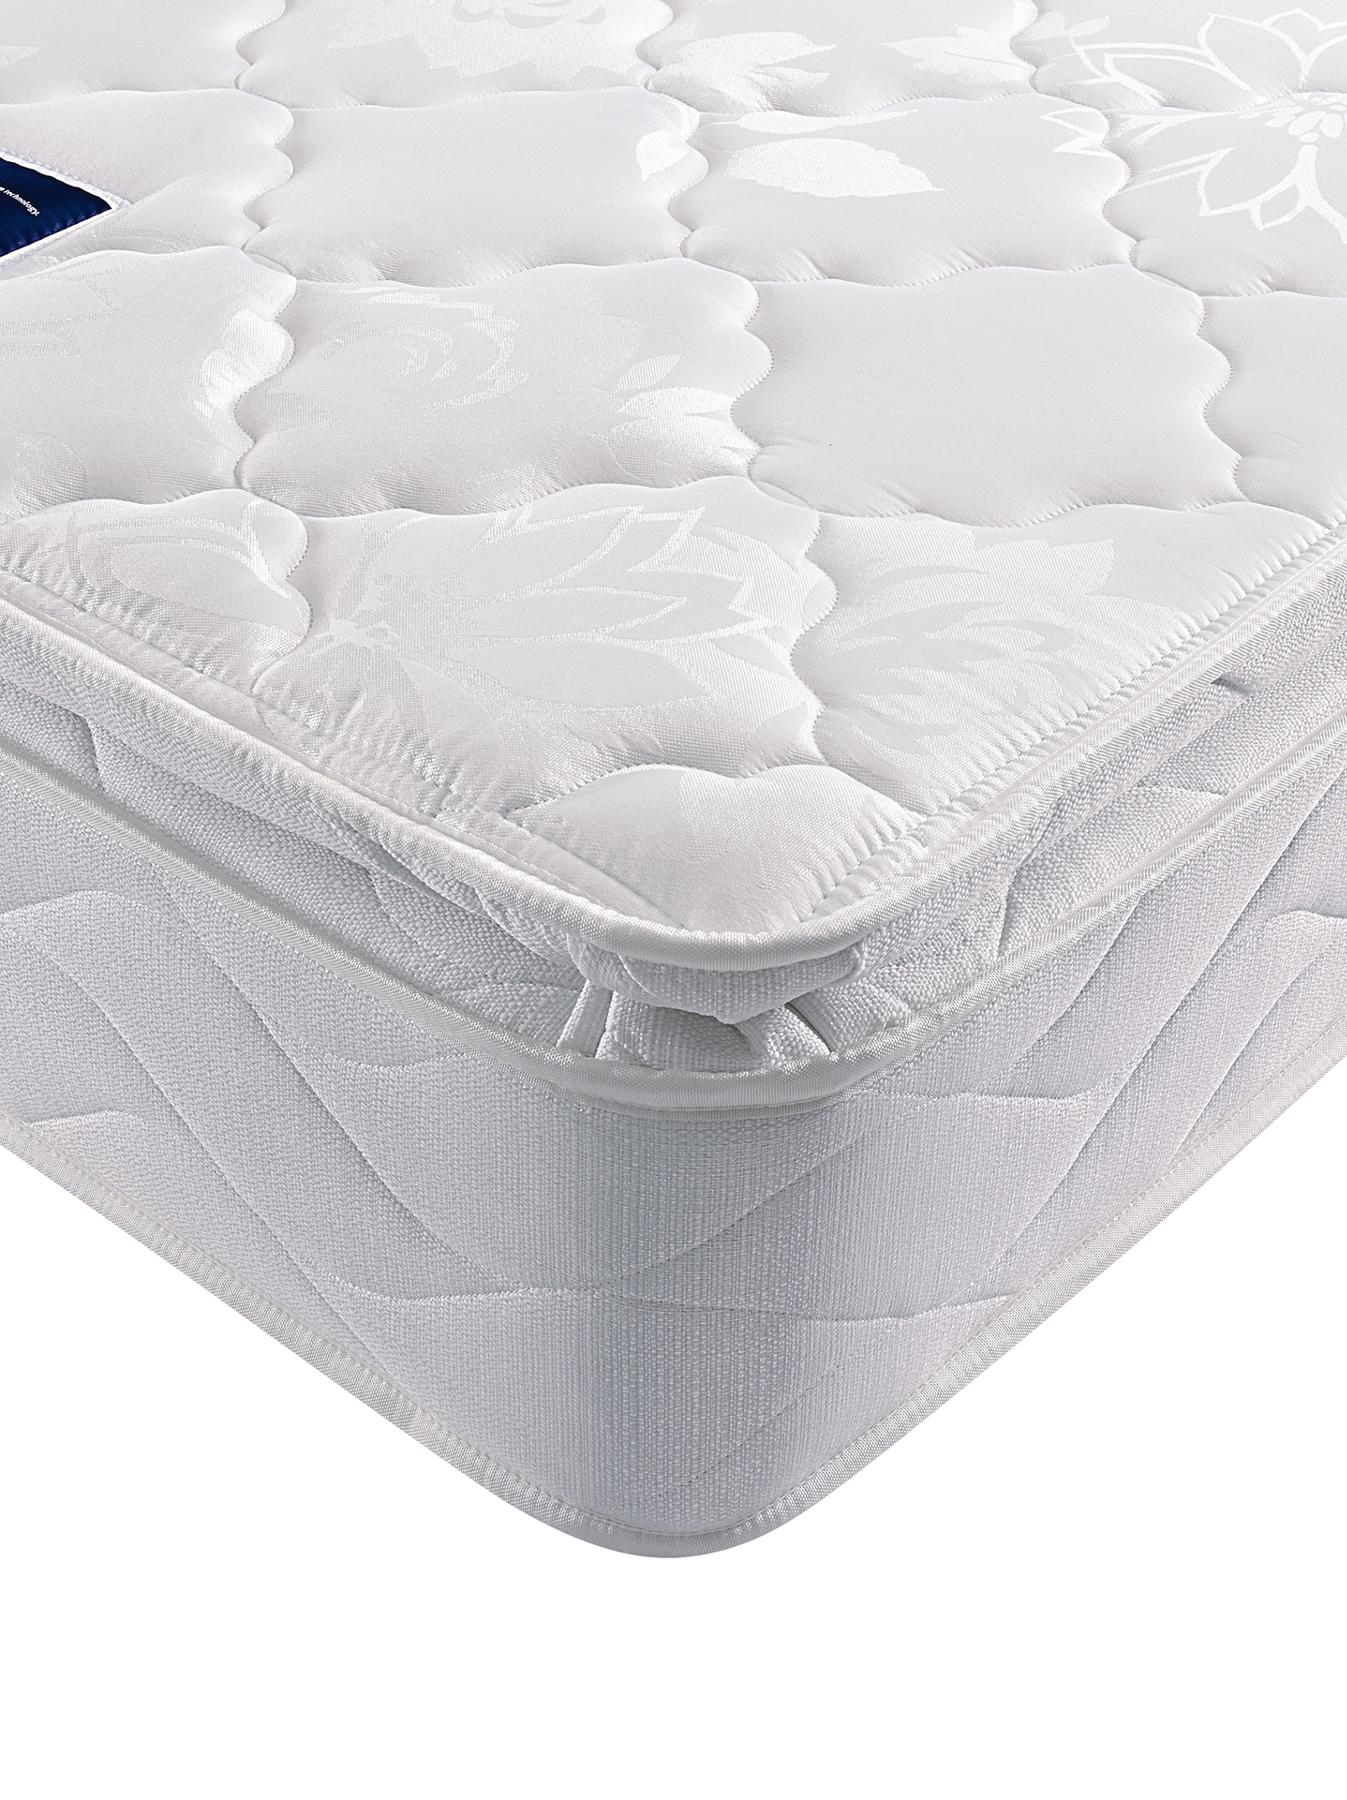 Deluxe Pillow Top Mattress - Medium Firm